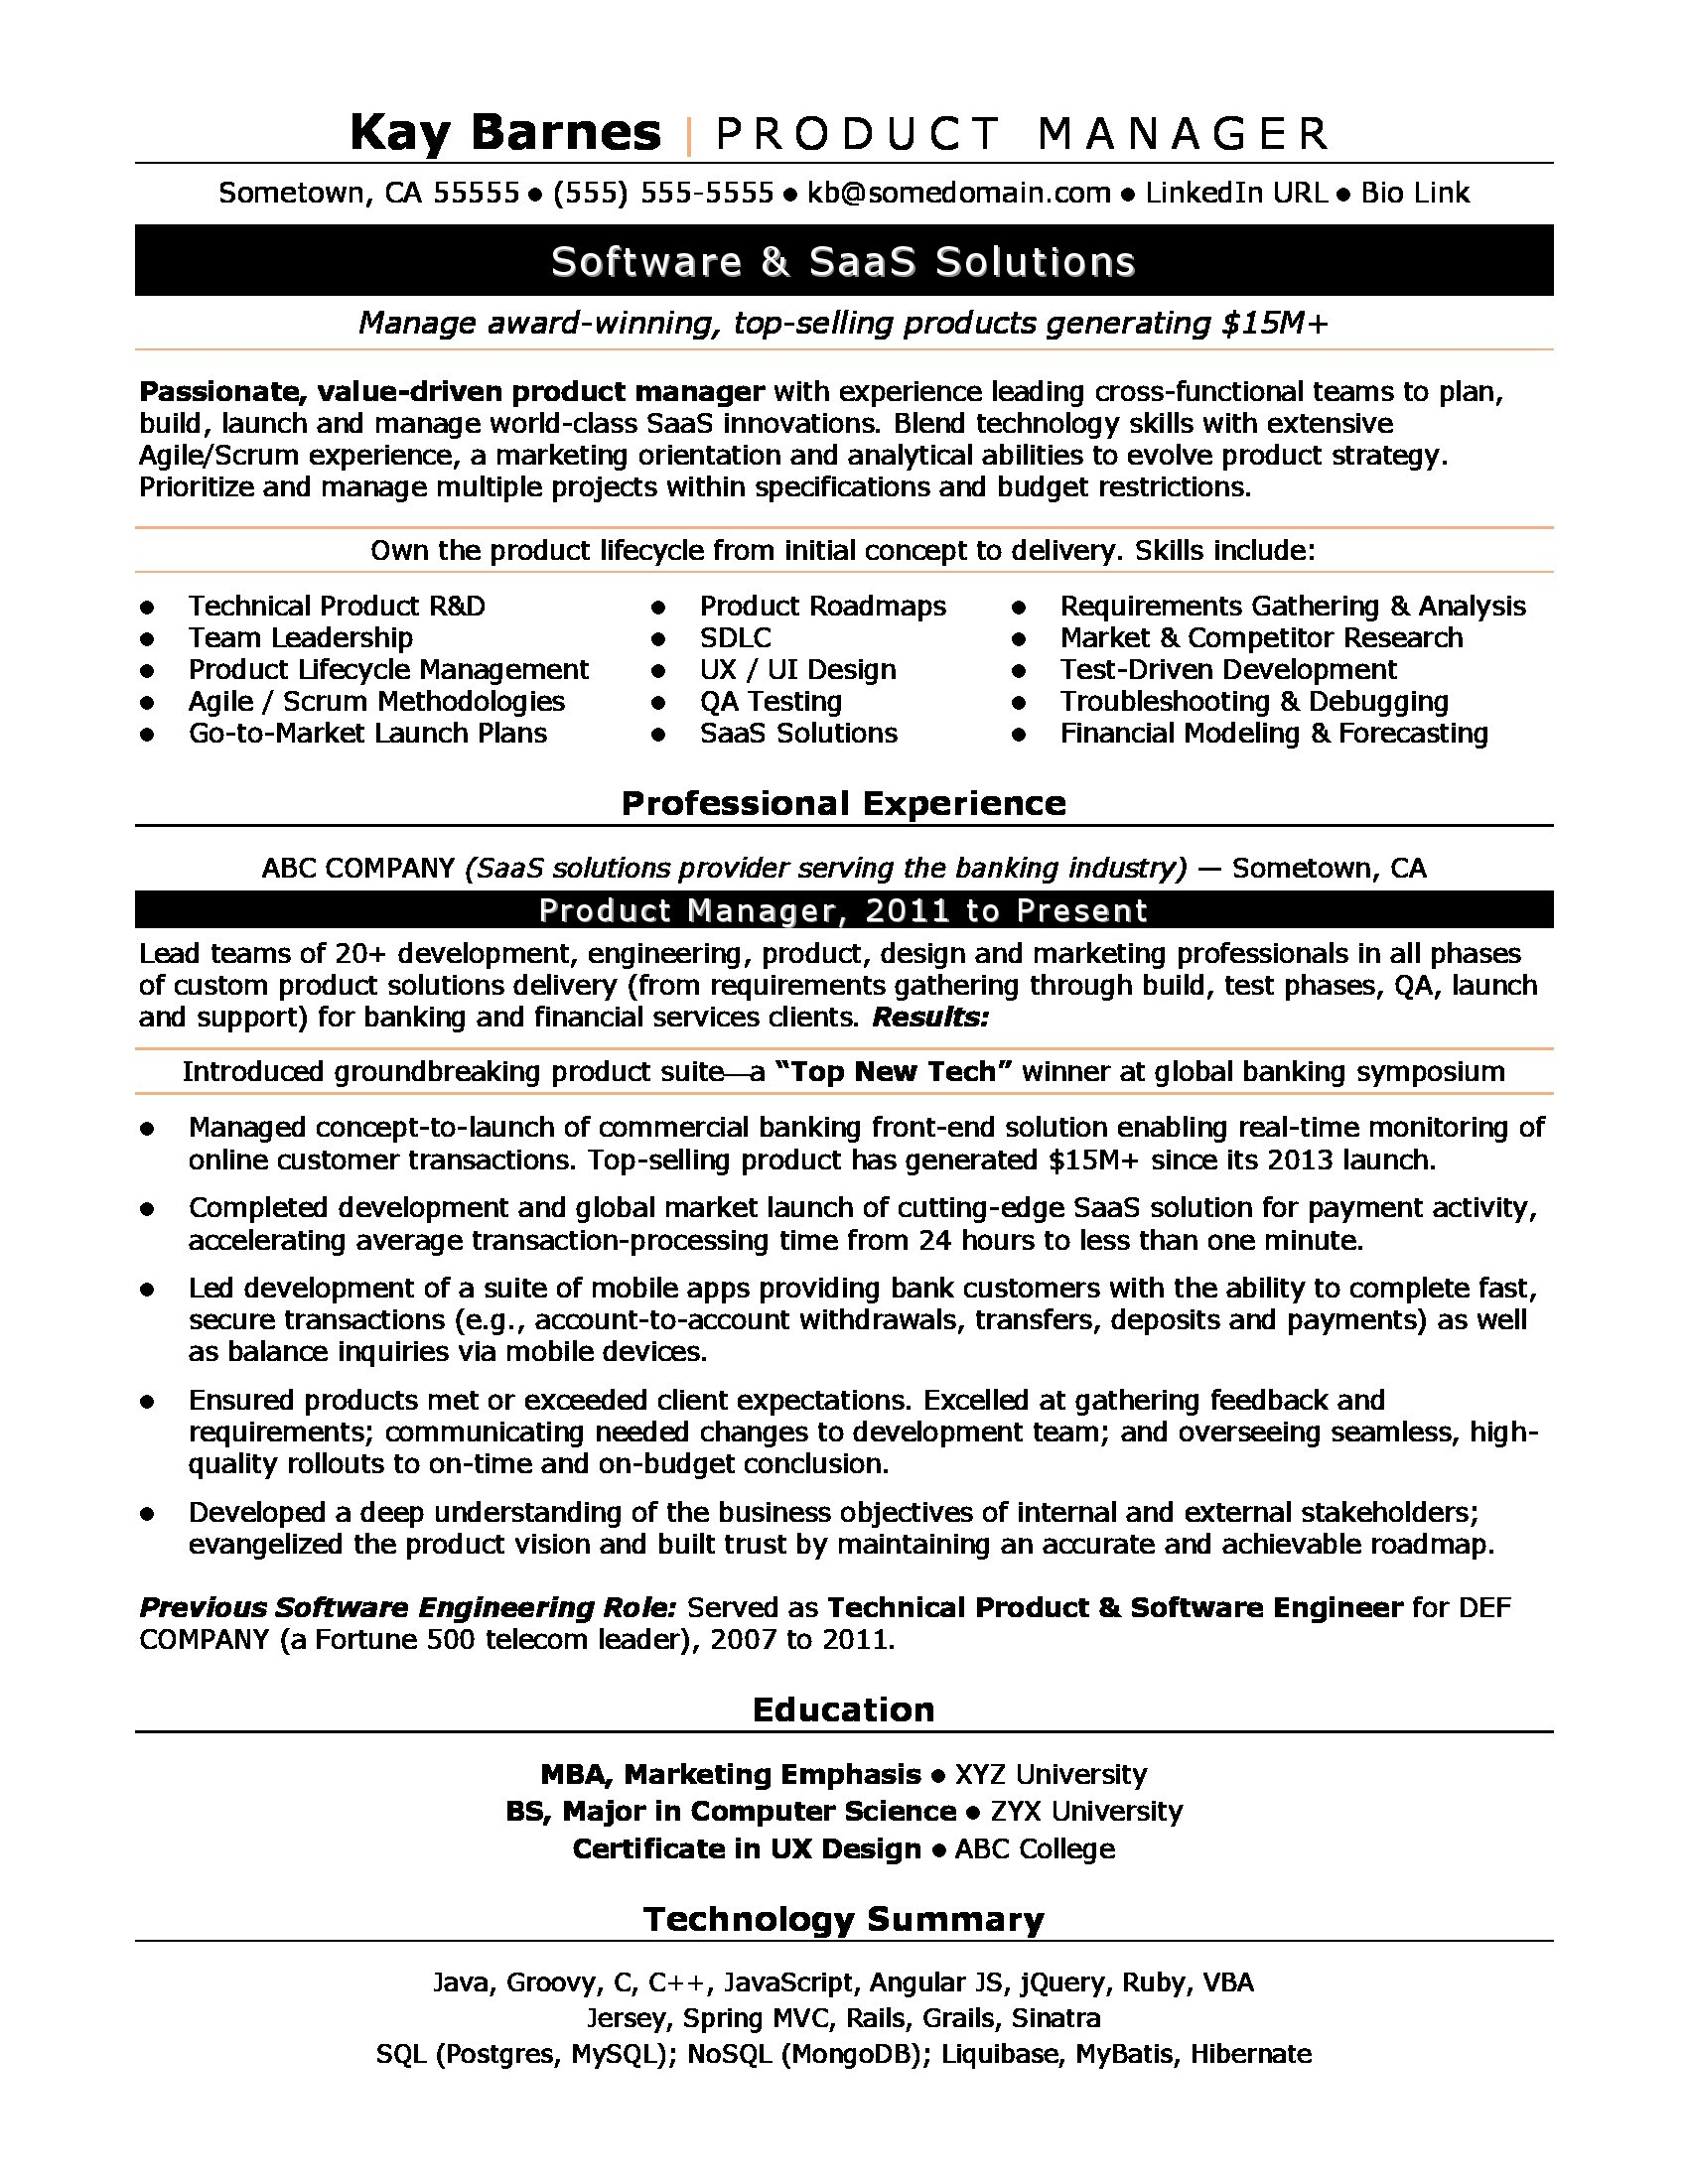 product manager resume sample - Product Line Manager Resume Sample